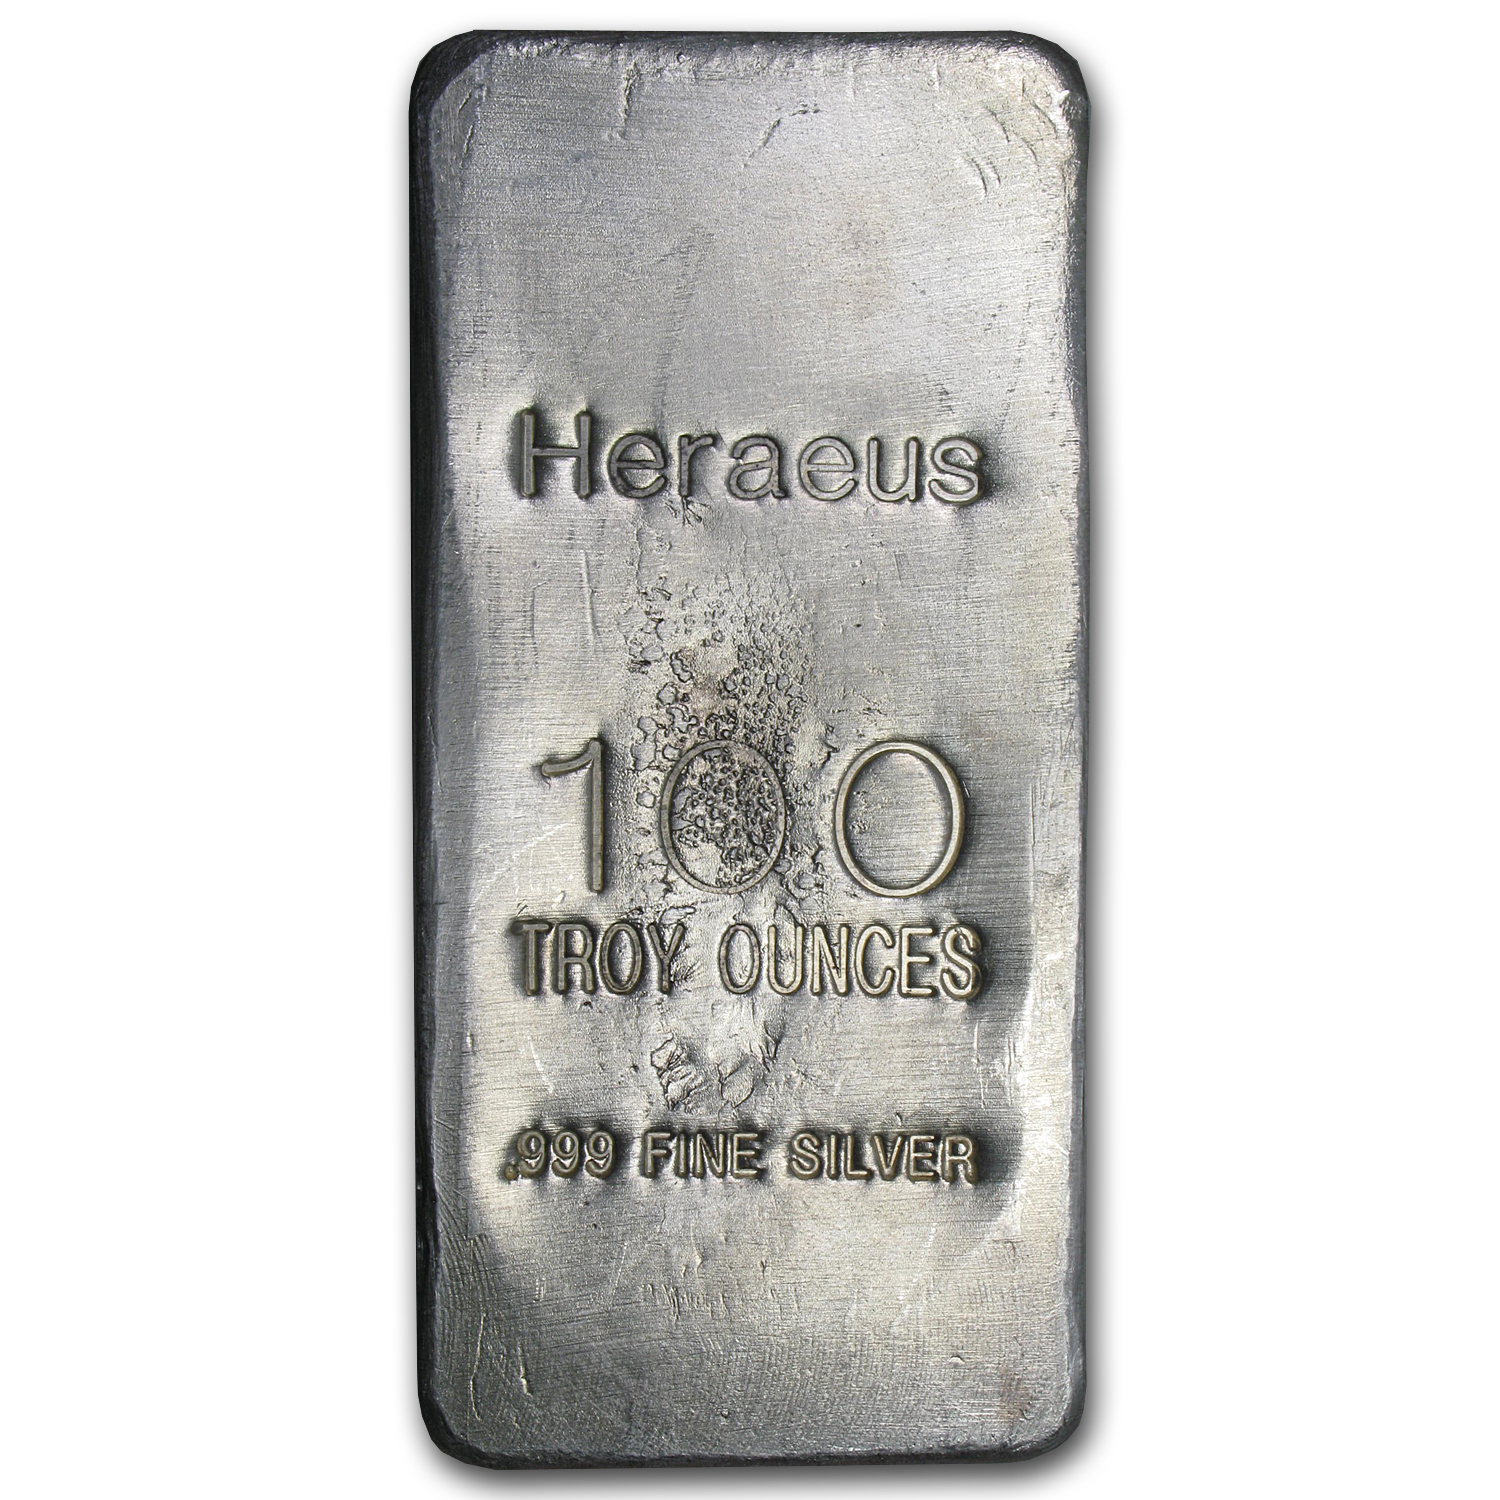 100 oz Silver Bar - Heraeus (Poured)